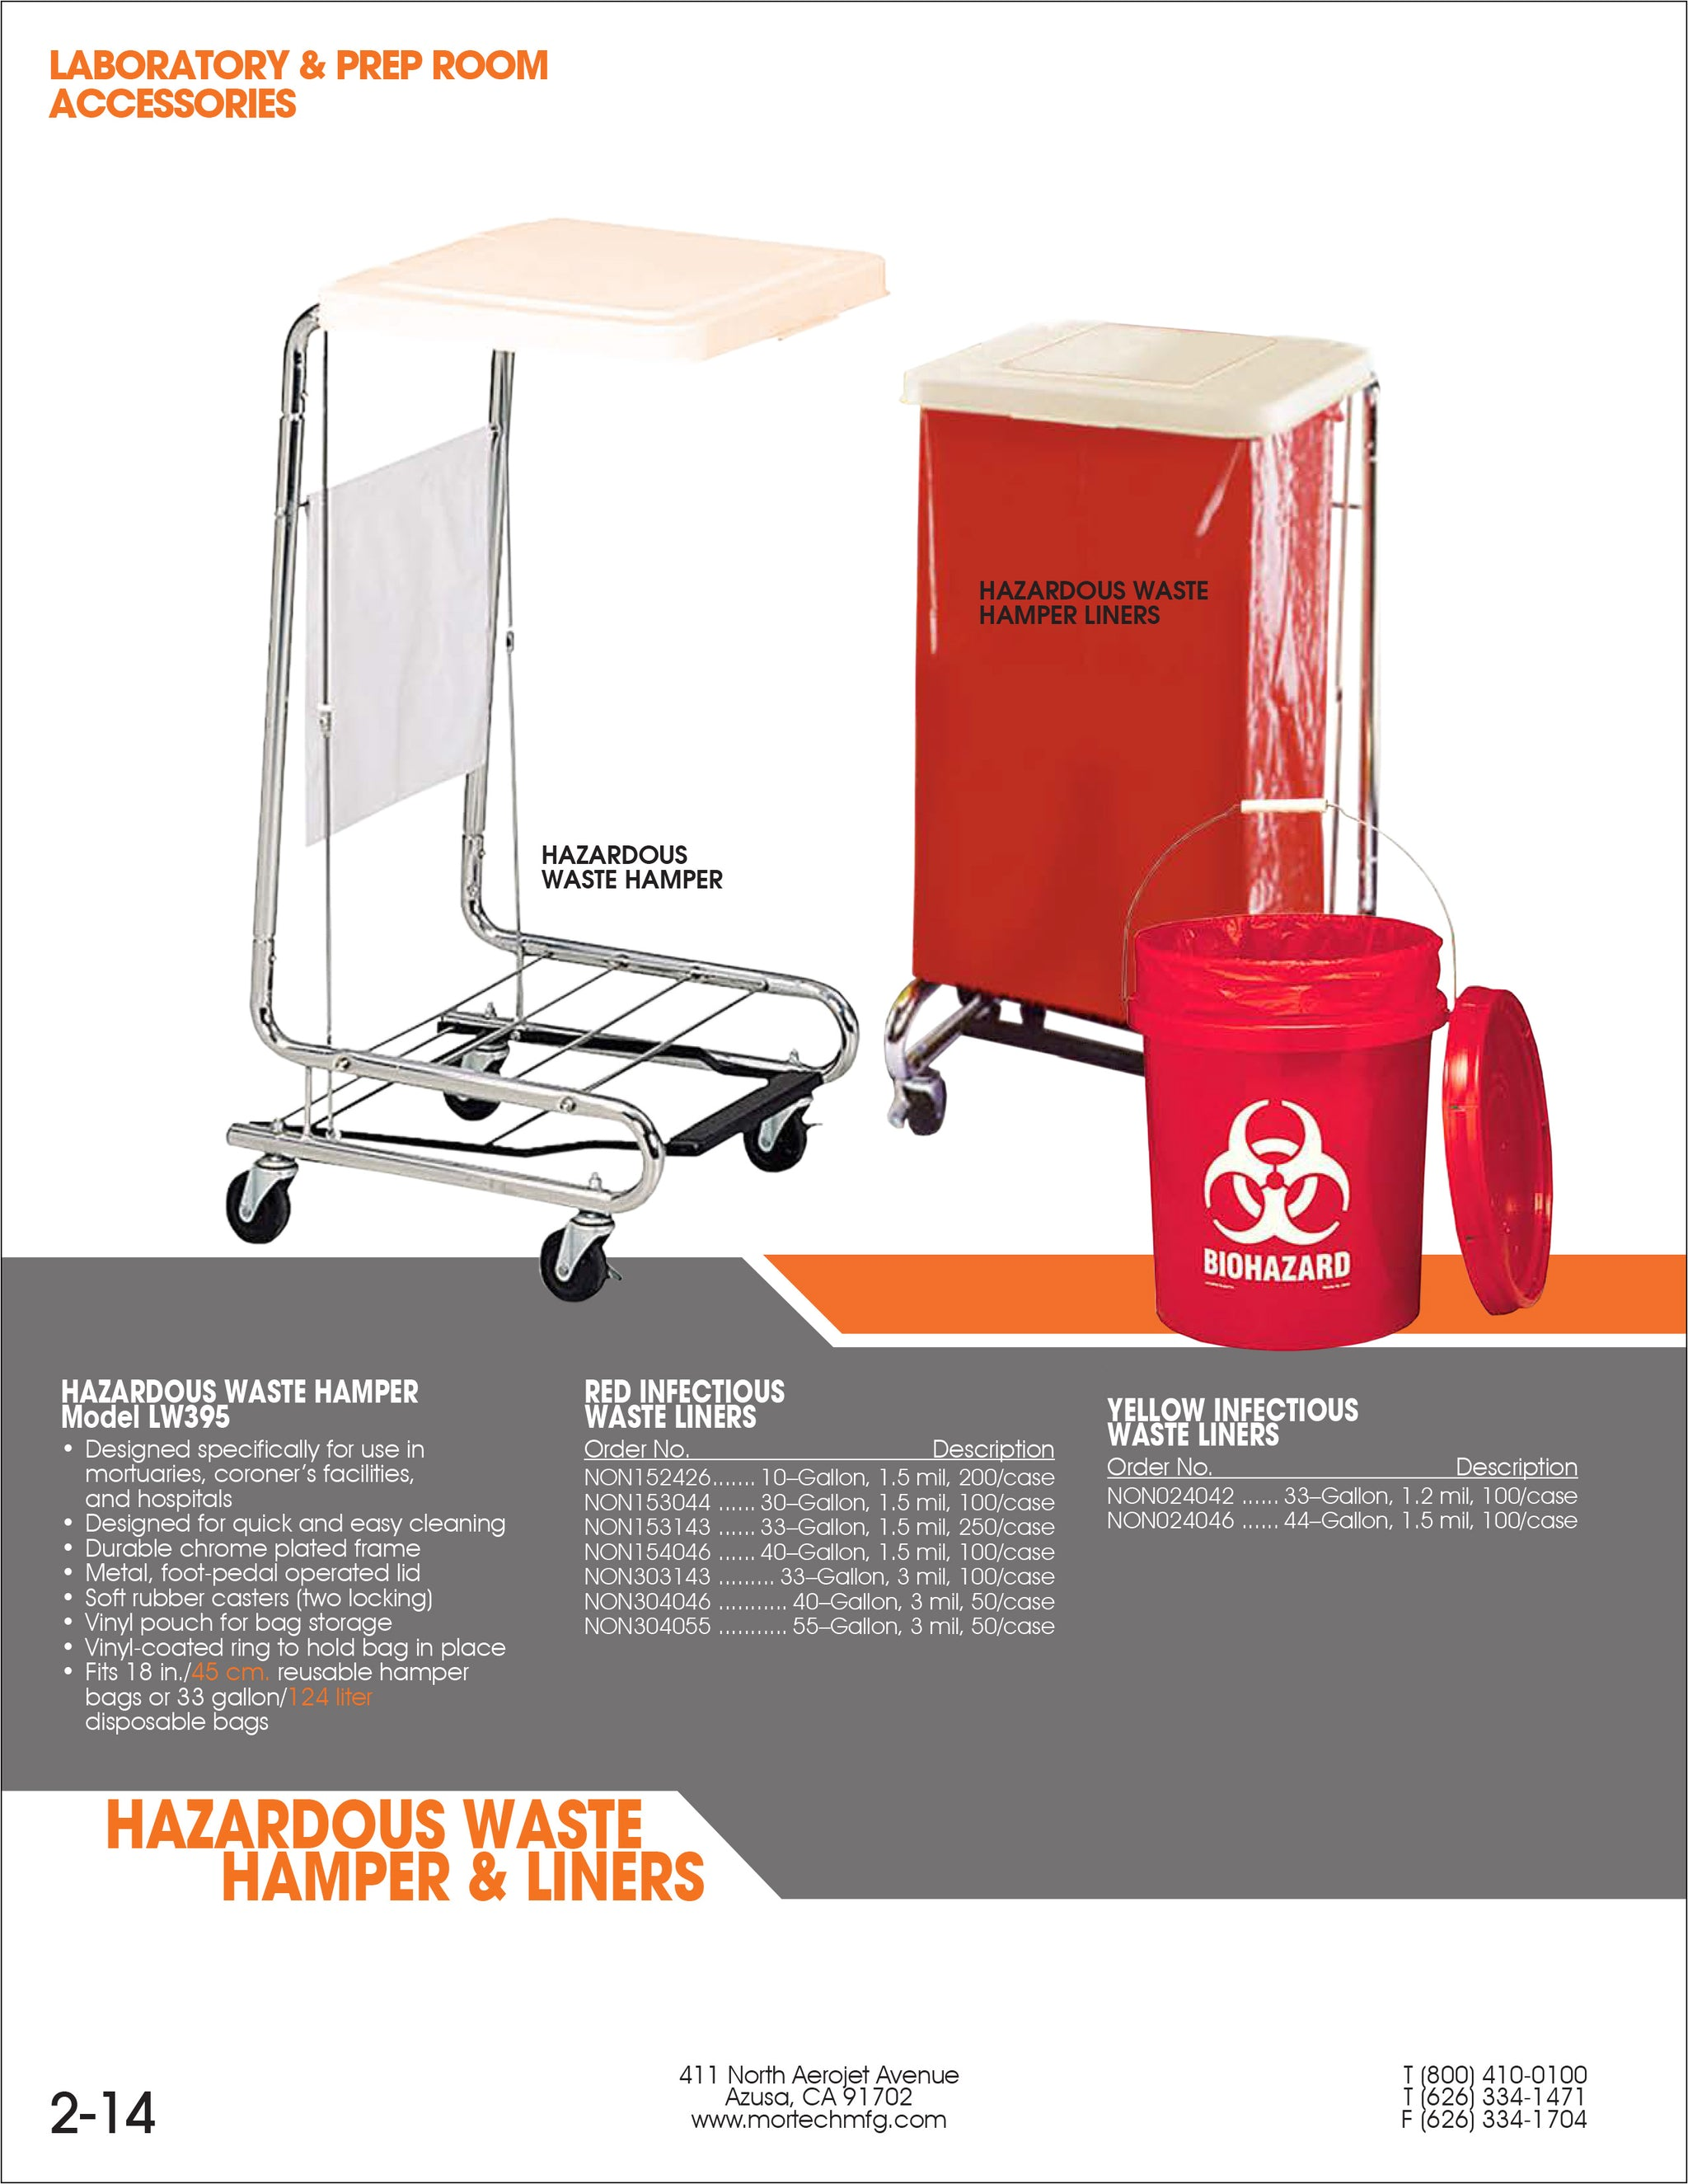 Hazardous Waste Hamper-Laboratory Accessory-Mortech Manufacturing Company Inc. Quality Stainless Steel Autopsy, Morgue, Funeral Home, Necropsy, Veterinary / Anatomy, Dissection Equipment and Accessories